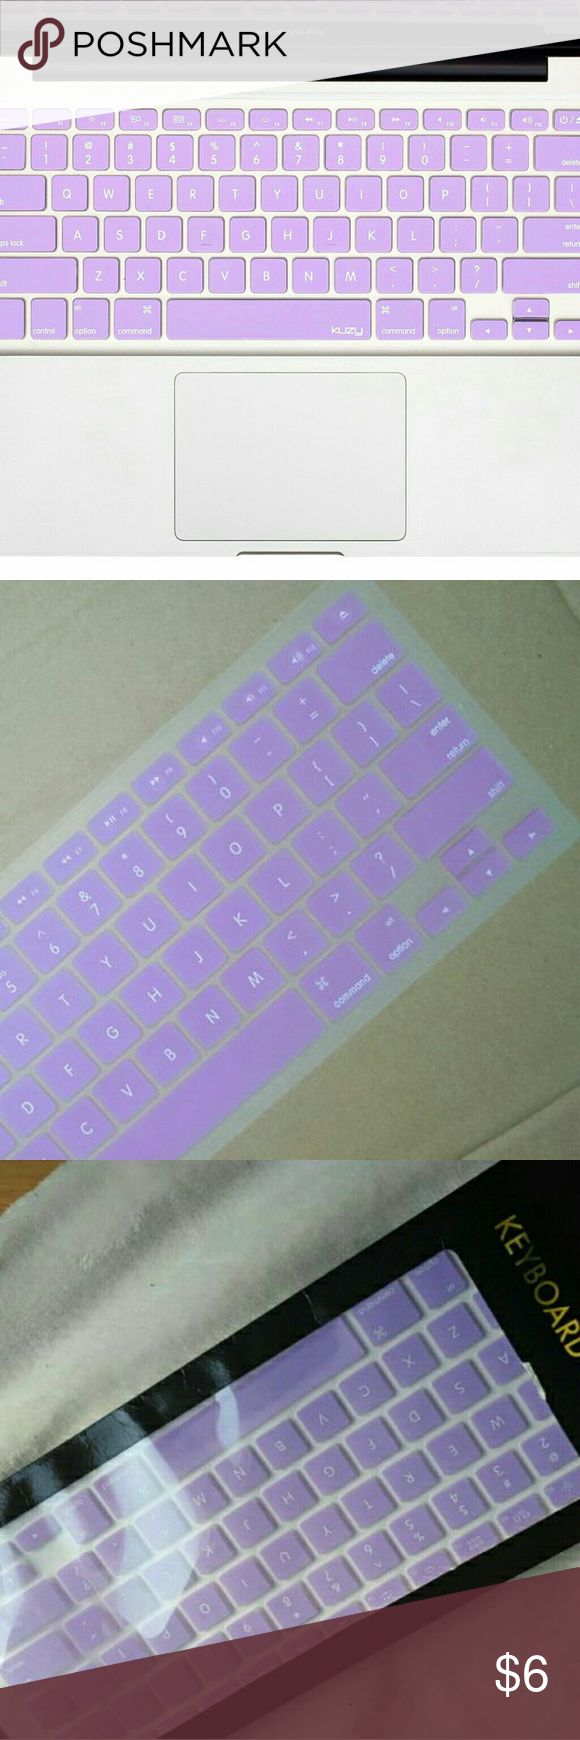 """MacBook keyboard cover BRAND NEW!!!Macbook Pro Keyboard Cover Color: Purple (lilac) Compatible with: MacBook Pro(13""""/15""""/17"""") White MacBook(13"""") MacBook with Retina(13""""/15"""") MacBook Air(13"""")                         [PRICE IS FIRM]                   (Yes I can create bundles) Michael Kors Accessories Laptop Cases"""